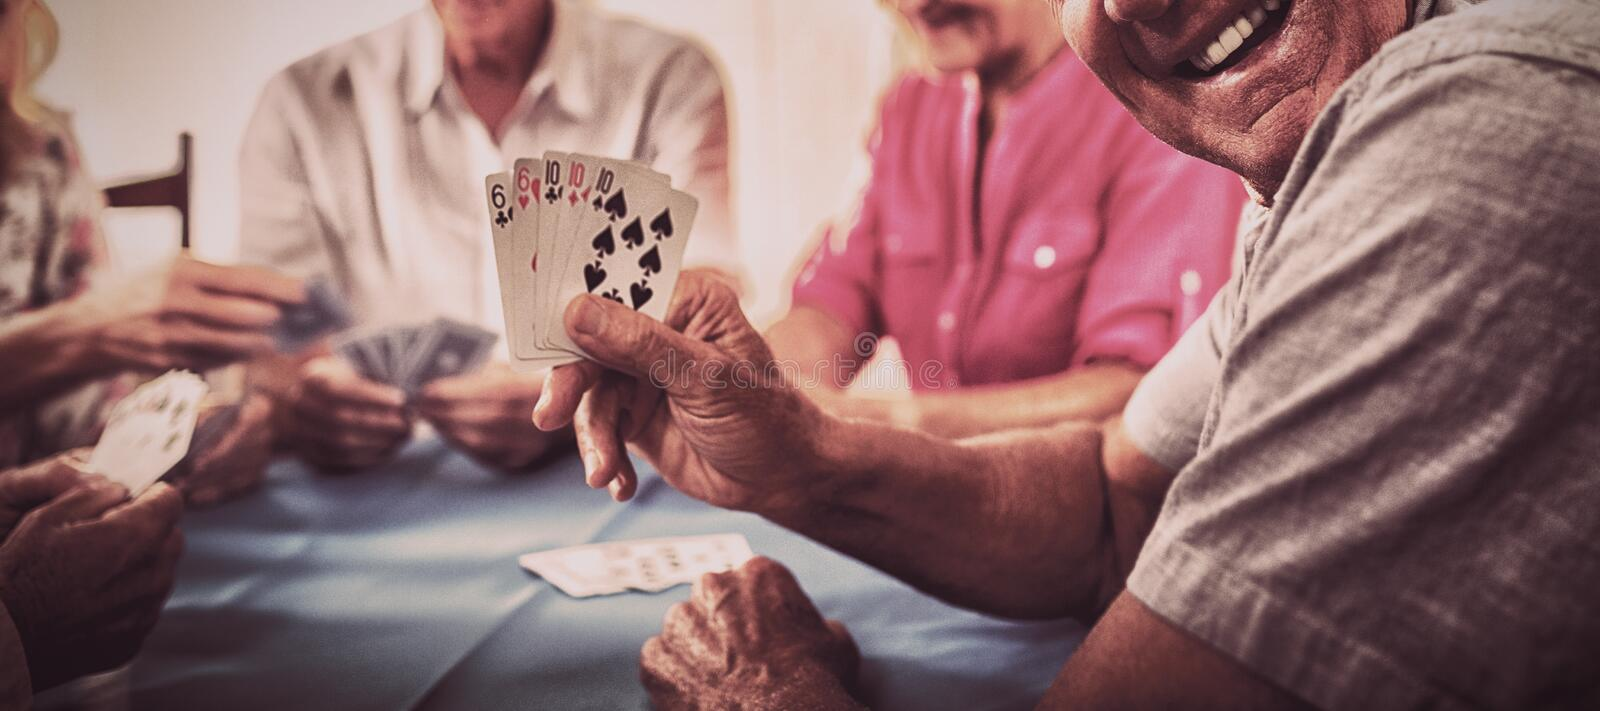 Group of seniors playing cards royalty free stock photo